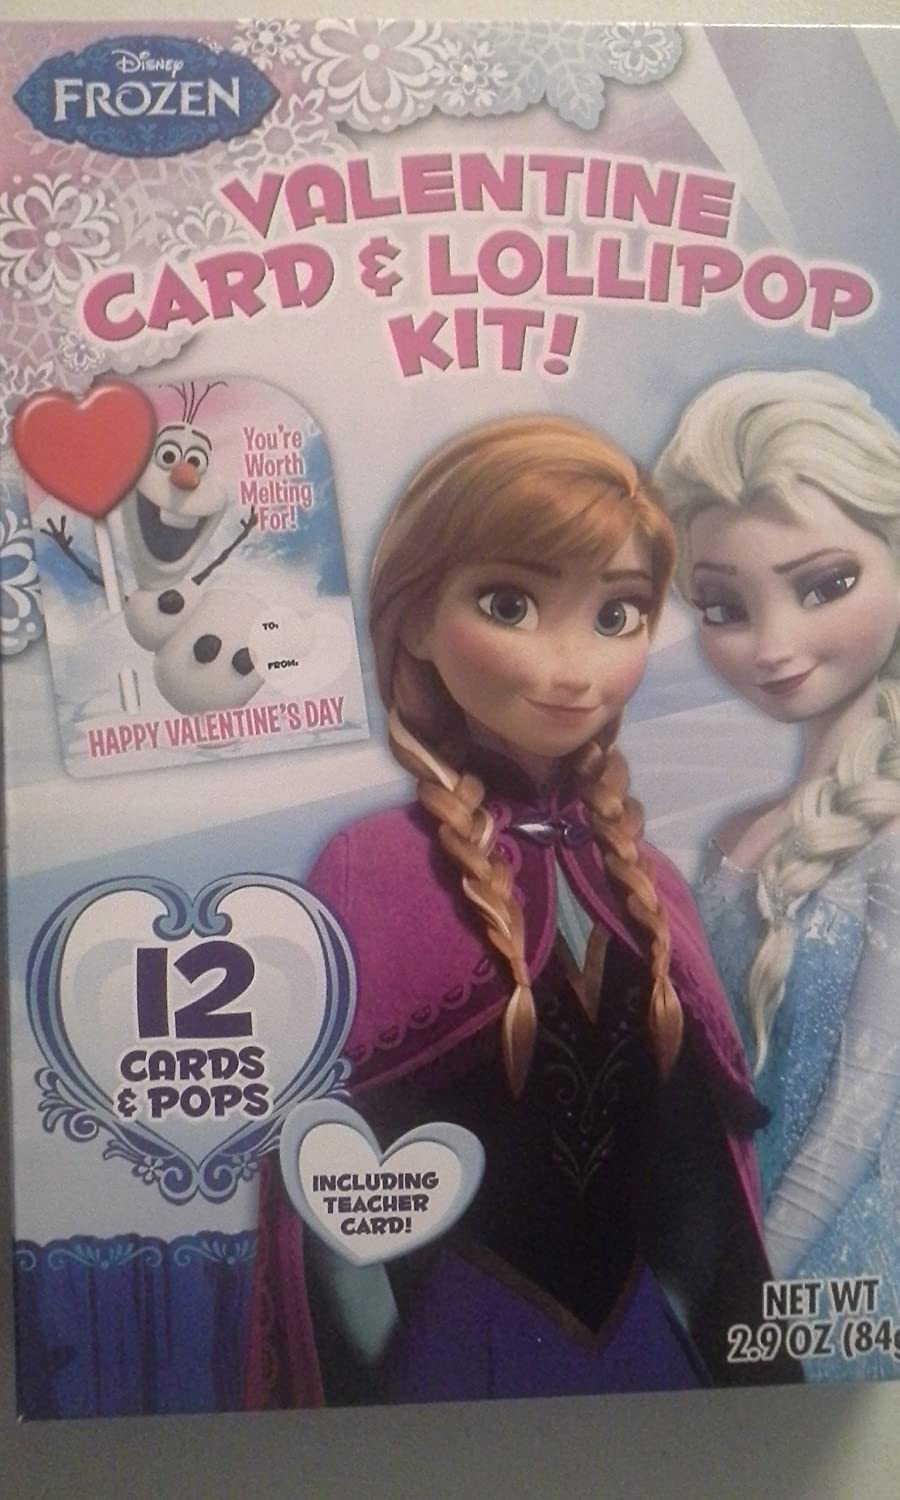 Disney Frozen Valentine Card & Lollipop Kit 12 Ct